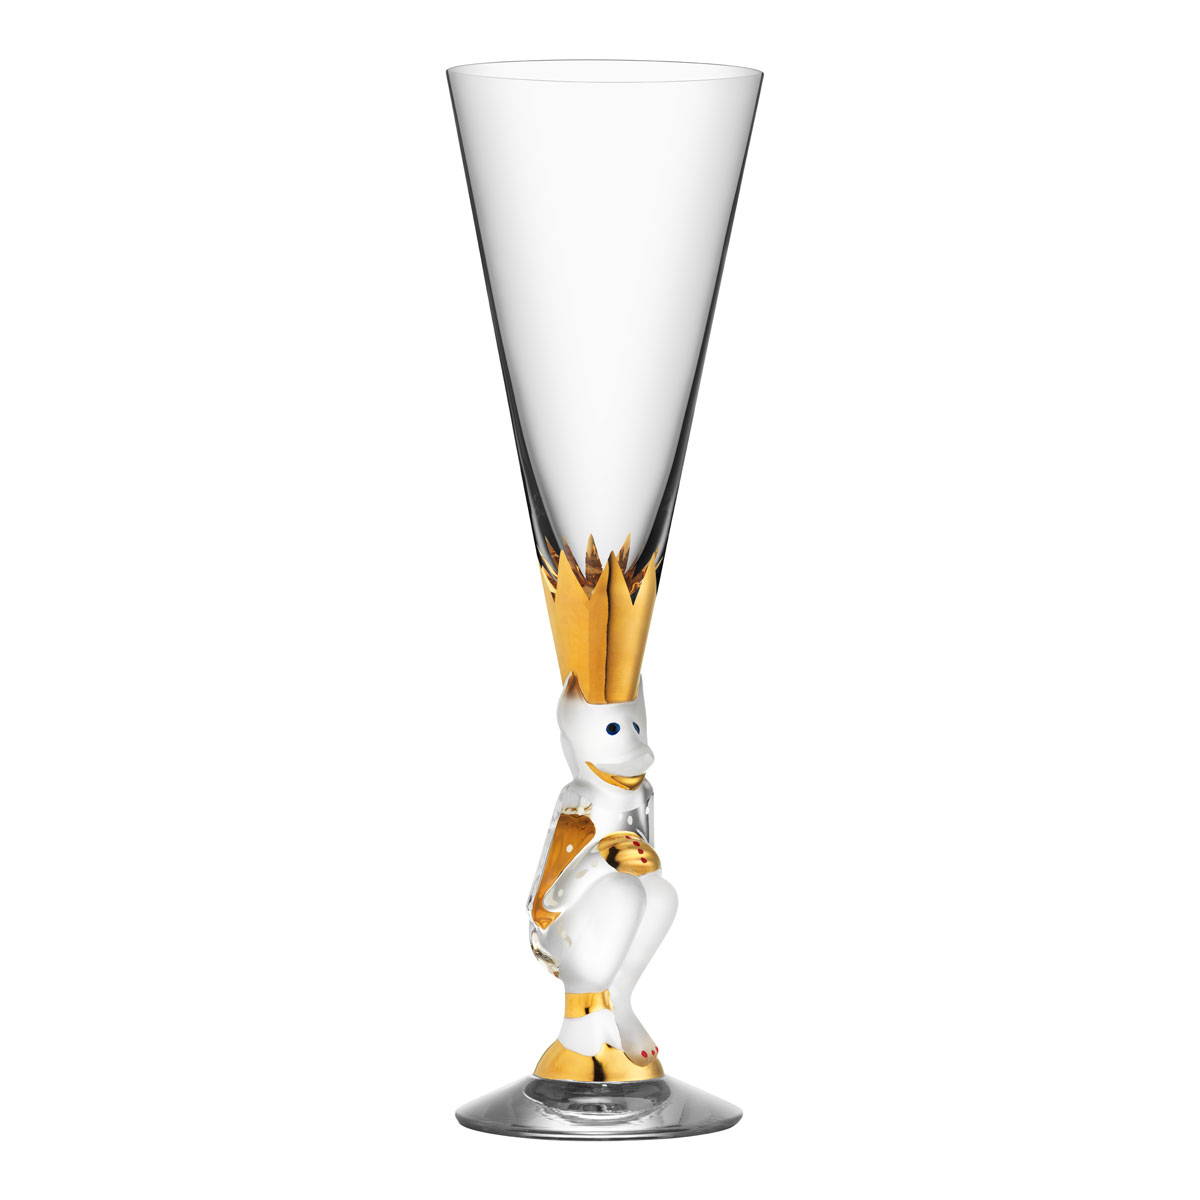 Orrefors Crystal The Sparkling Devil Clear Champagne, Single